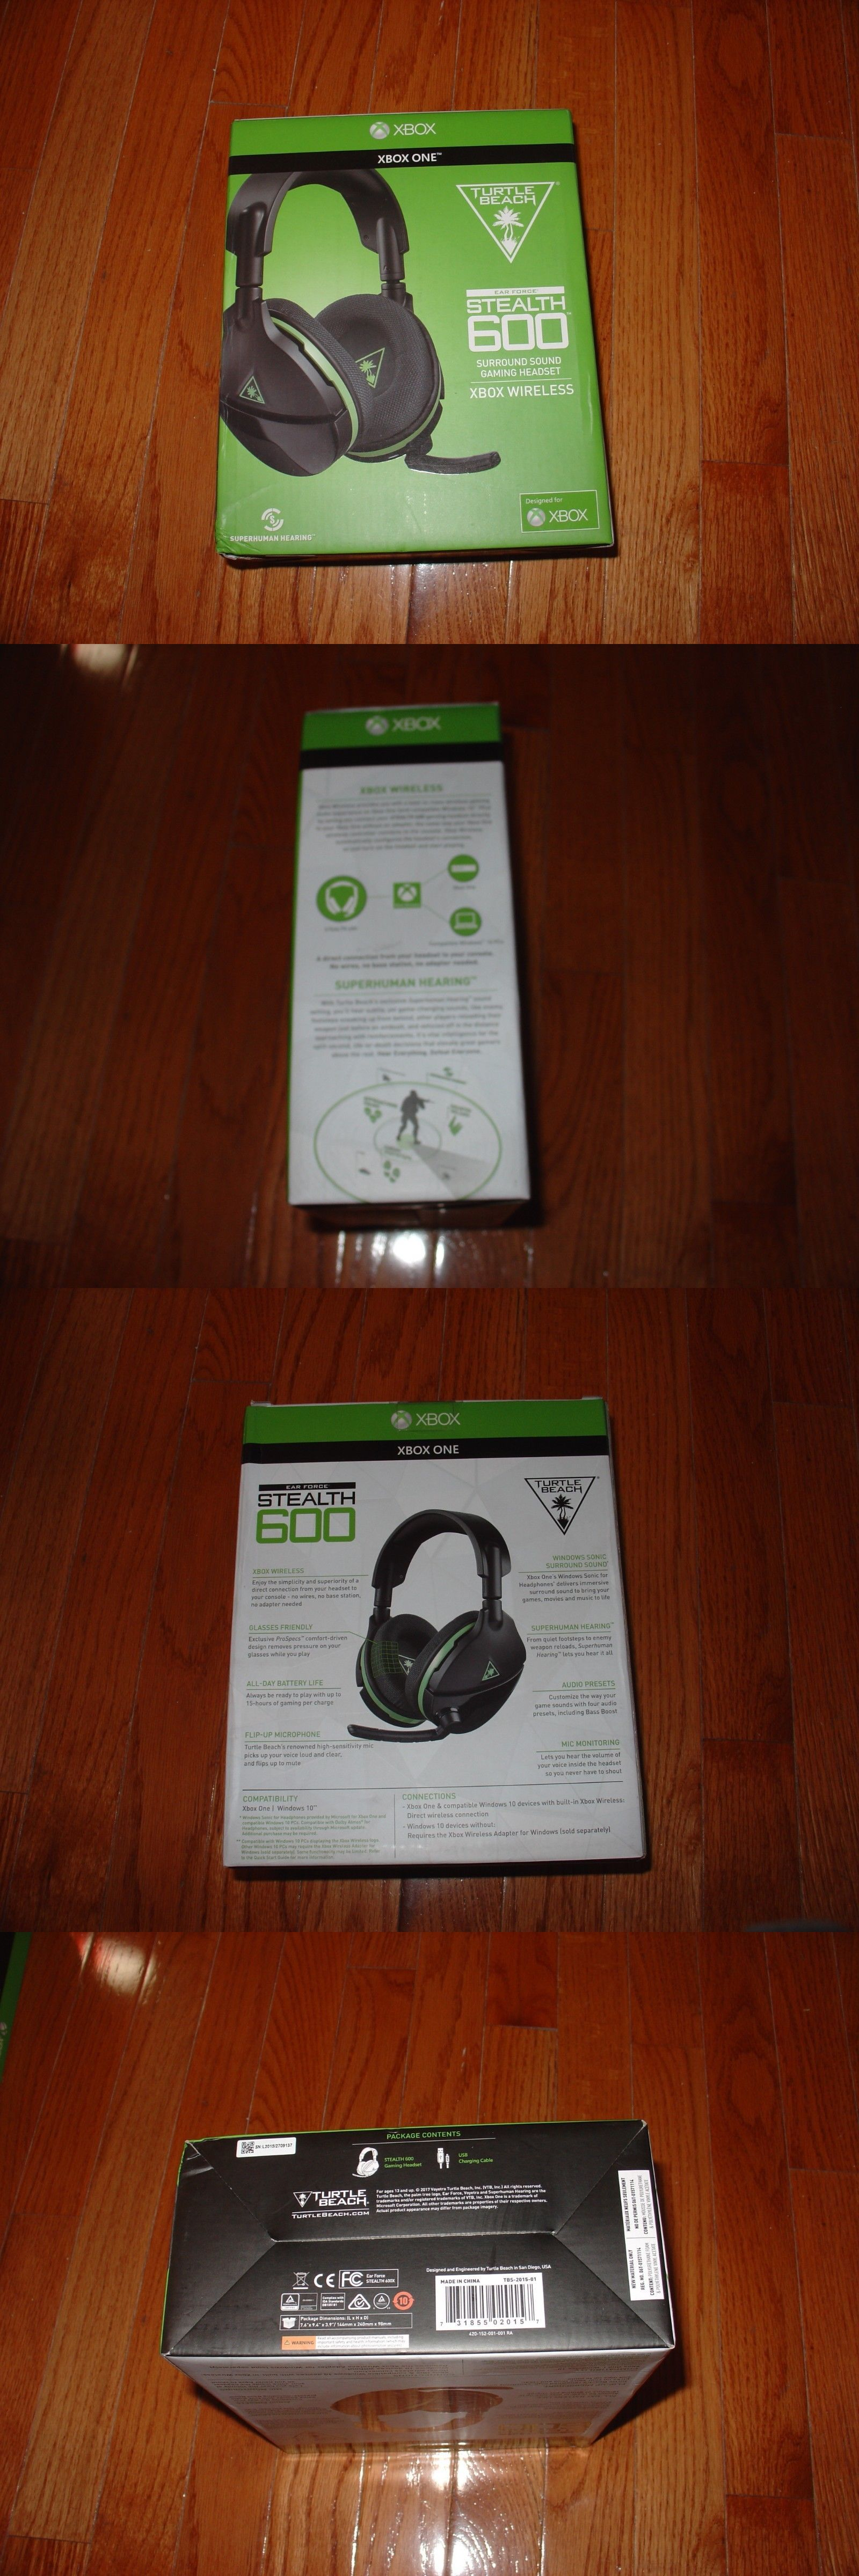 Headsets 171821: Turtle Beach Stealth 600 Headset Wireless For Xbox One ->  BUY IT NOW ONLY: $98.95 on #eBay #headsets #… | Xbox one for sale, Turtle  beach, Xbox one